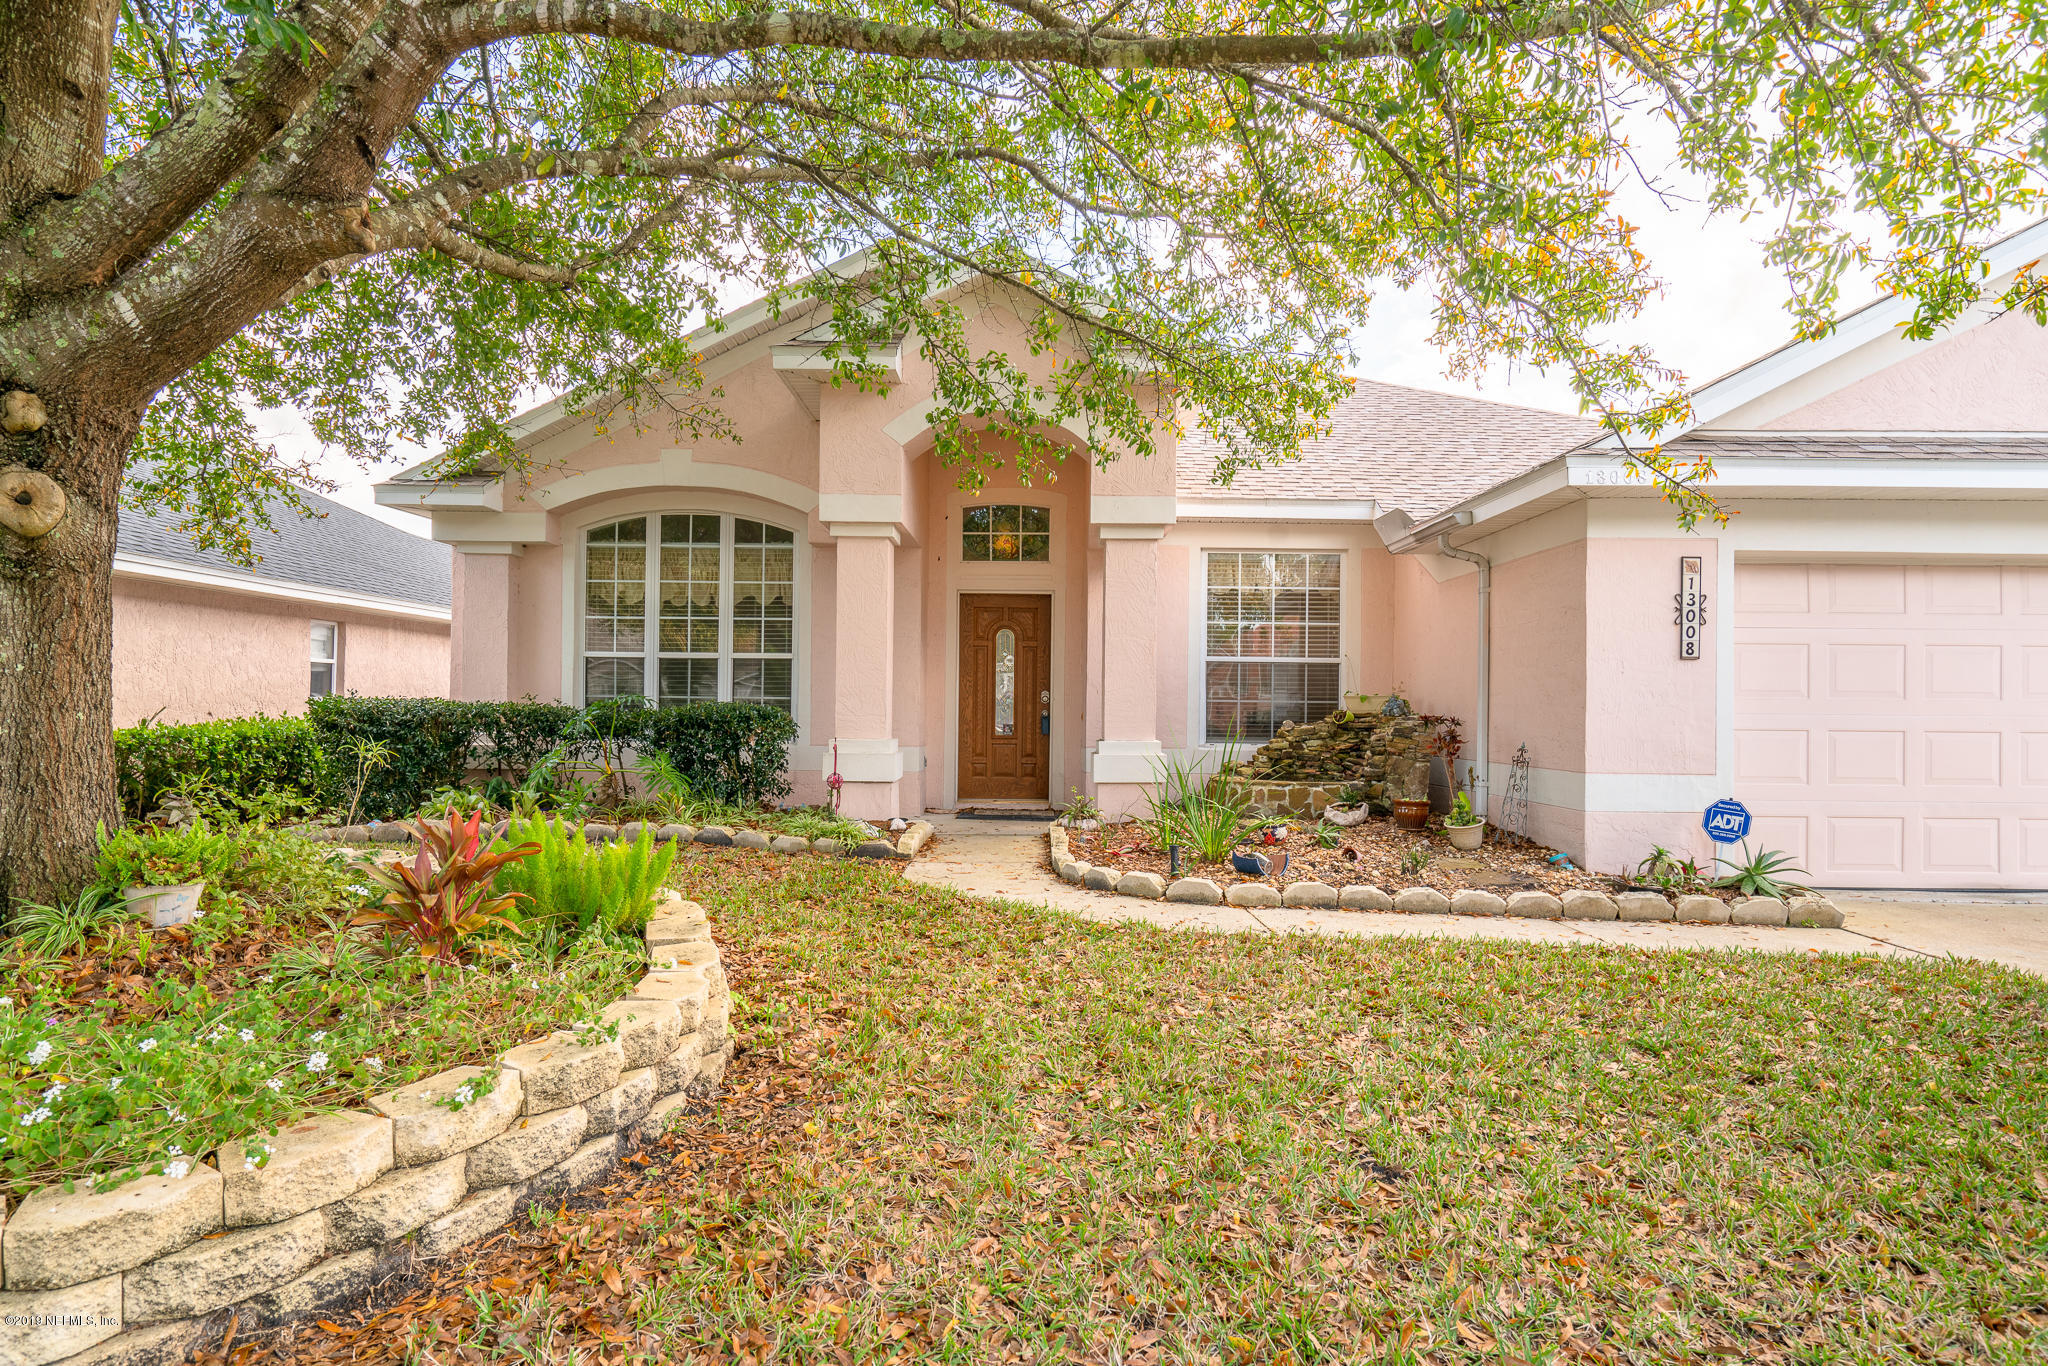 13008 CHETS CREEK, JACKSONVILLE, FLORIDA 32224, 4 Bedrooms Bedrooms, ,2 BathroomsBathrooms,Residential - single family,For sale,CHETS CREEK,985282